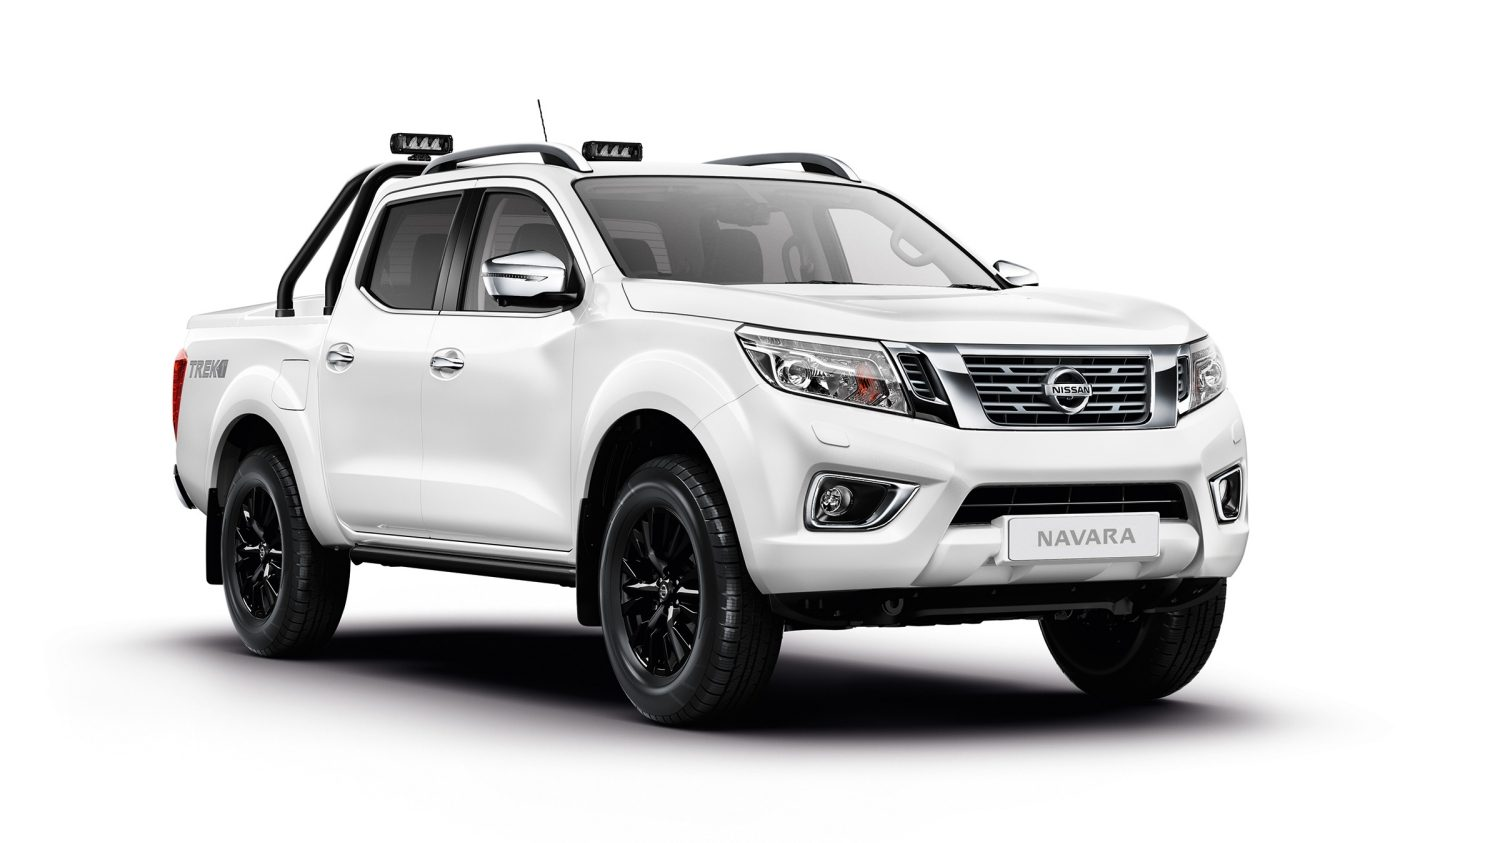 Navara special version exterior design